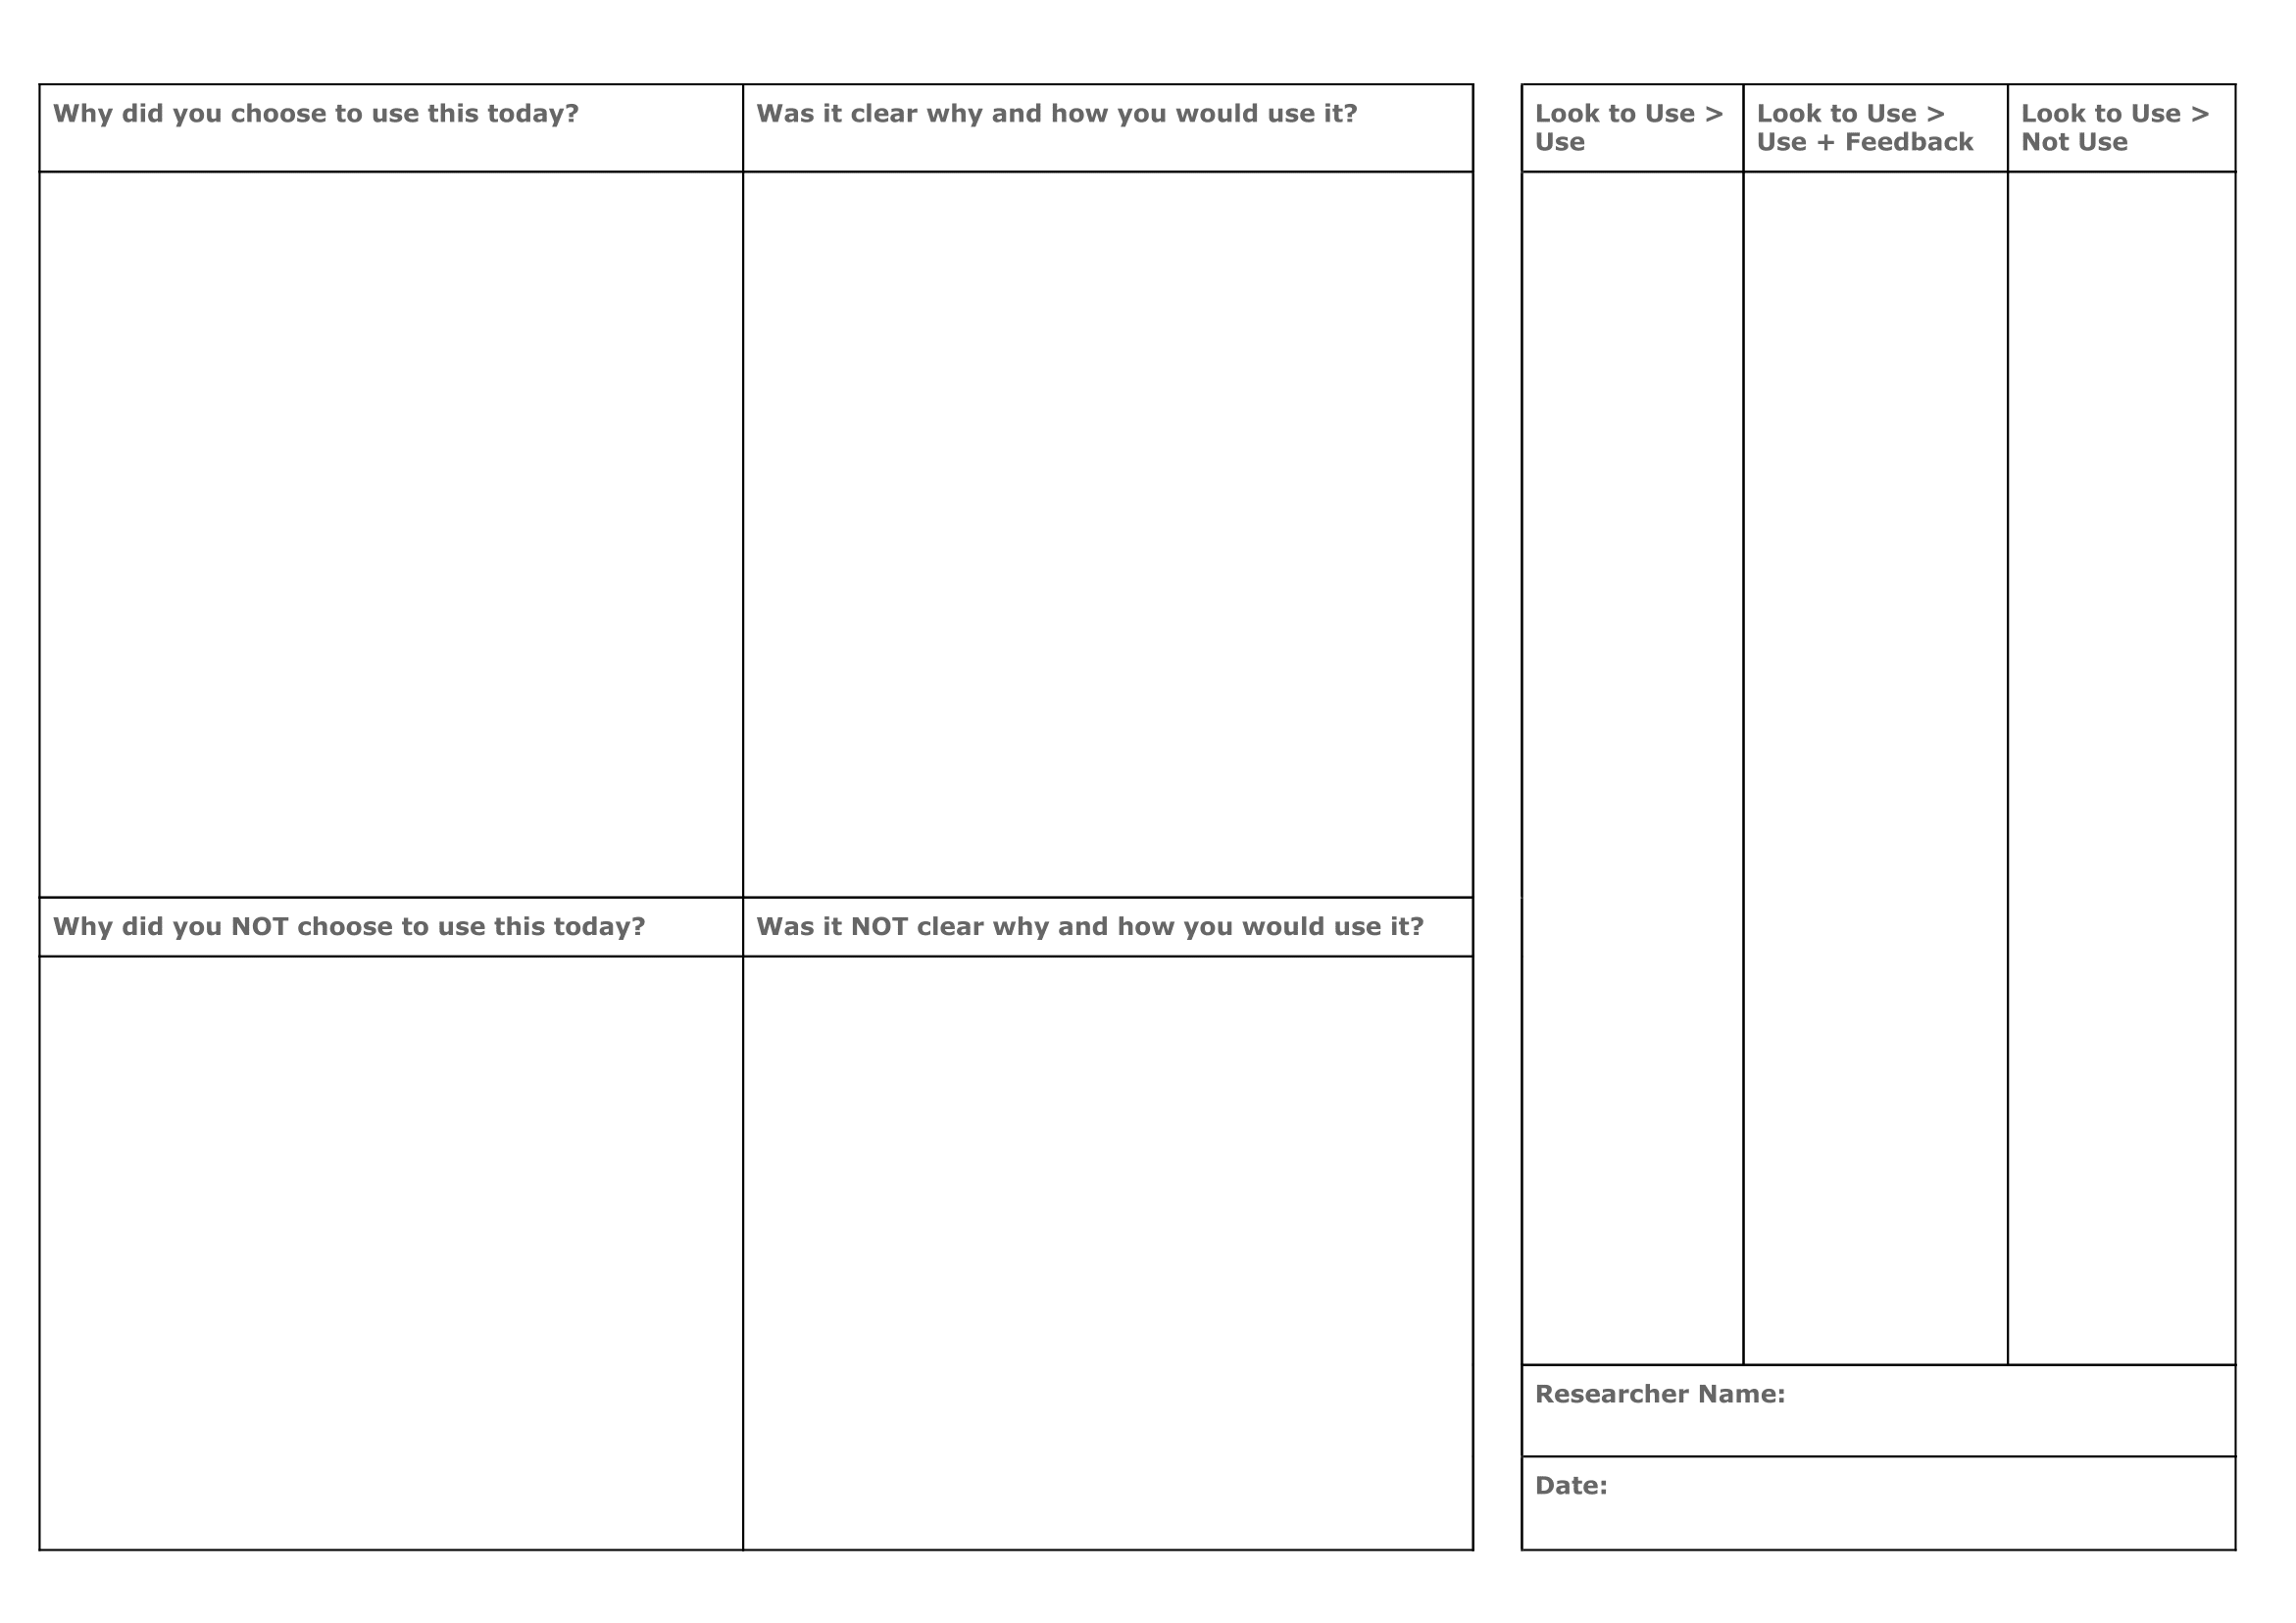 We created these sheets to use for our field studies